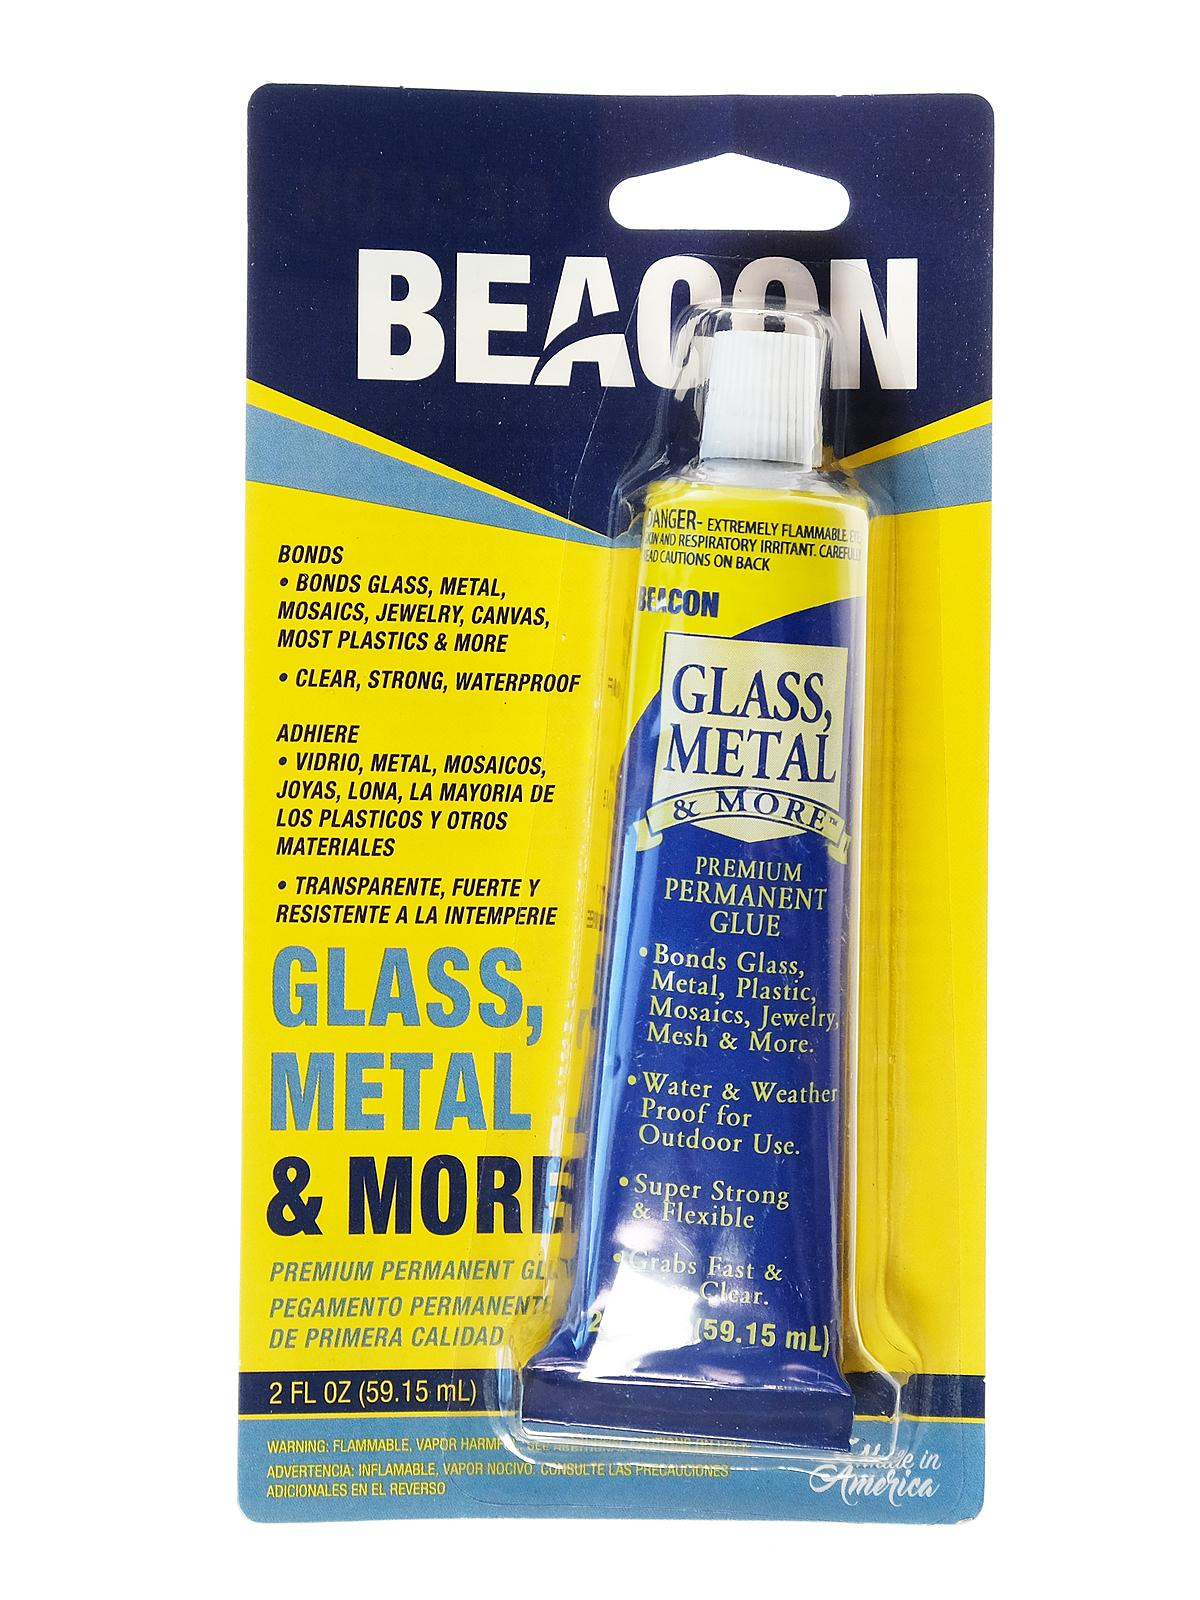 Beacon Glass Metal And More Premium Permanent Glue